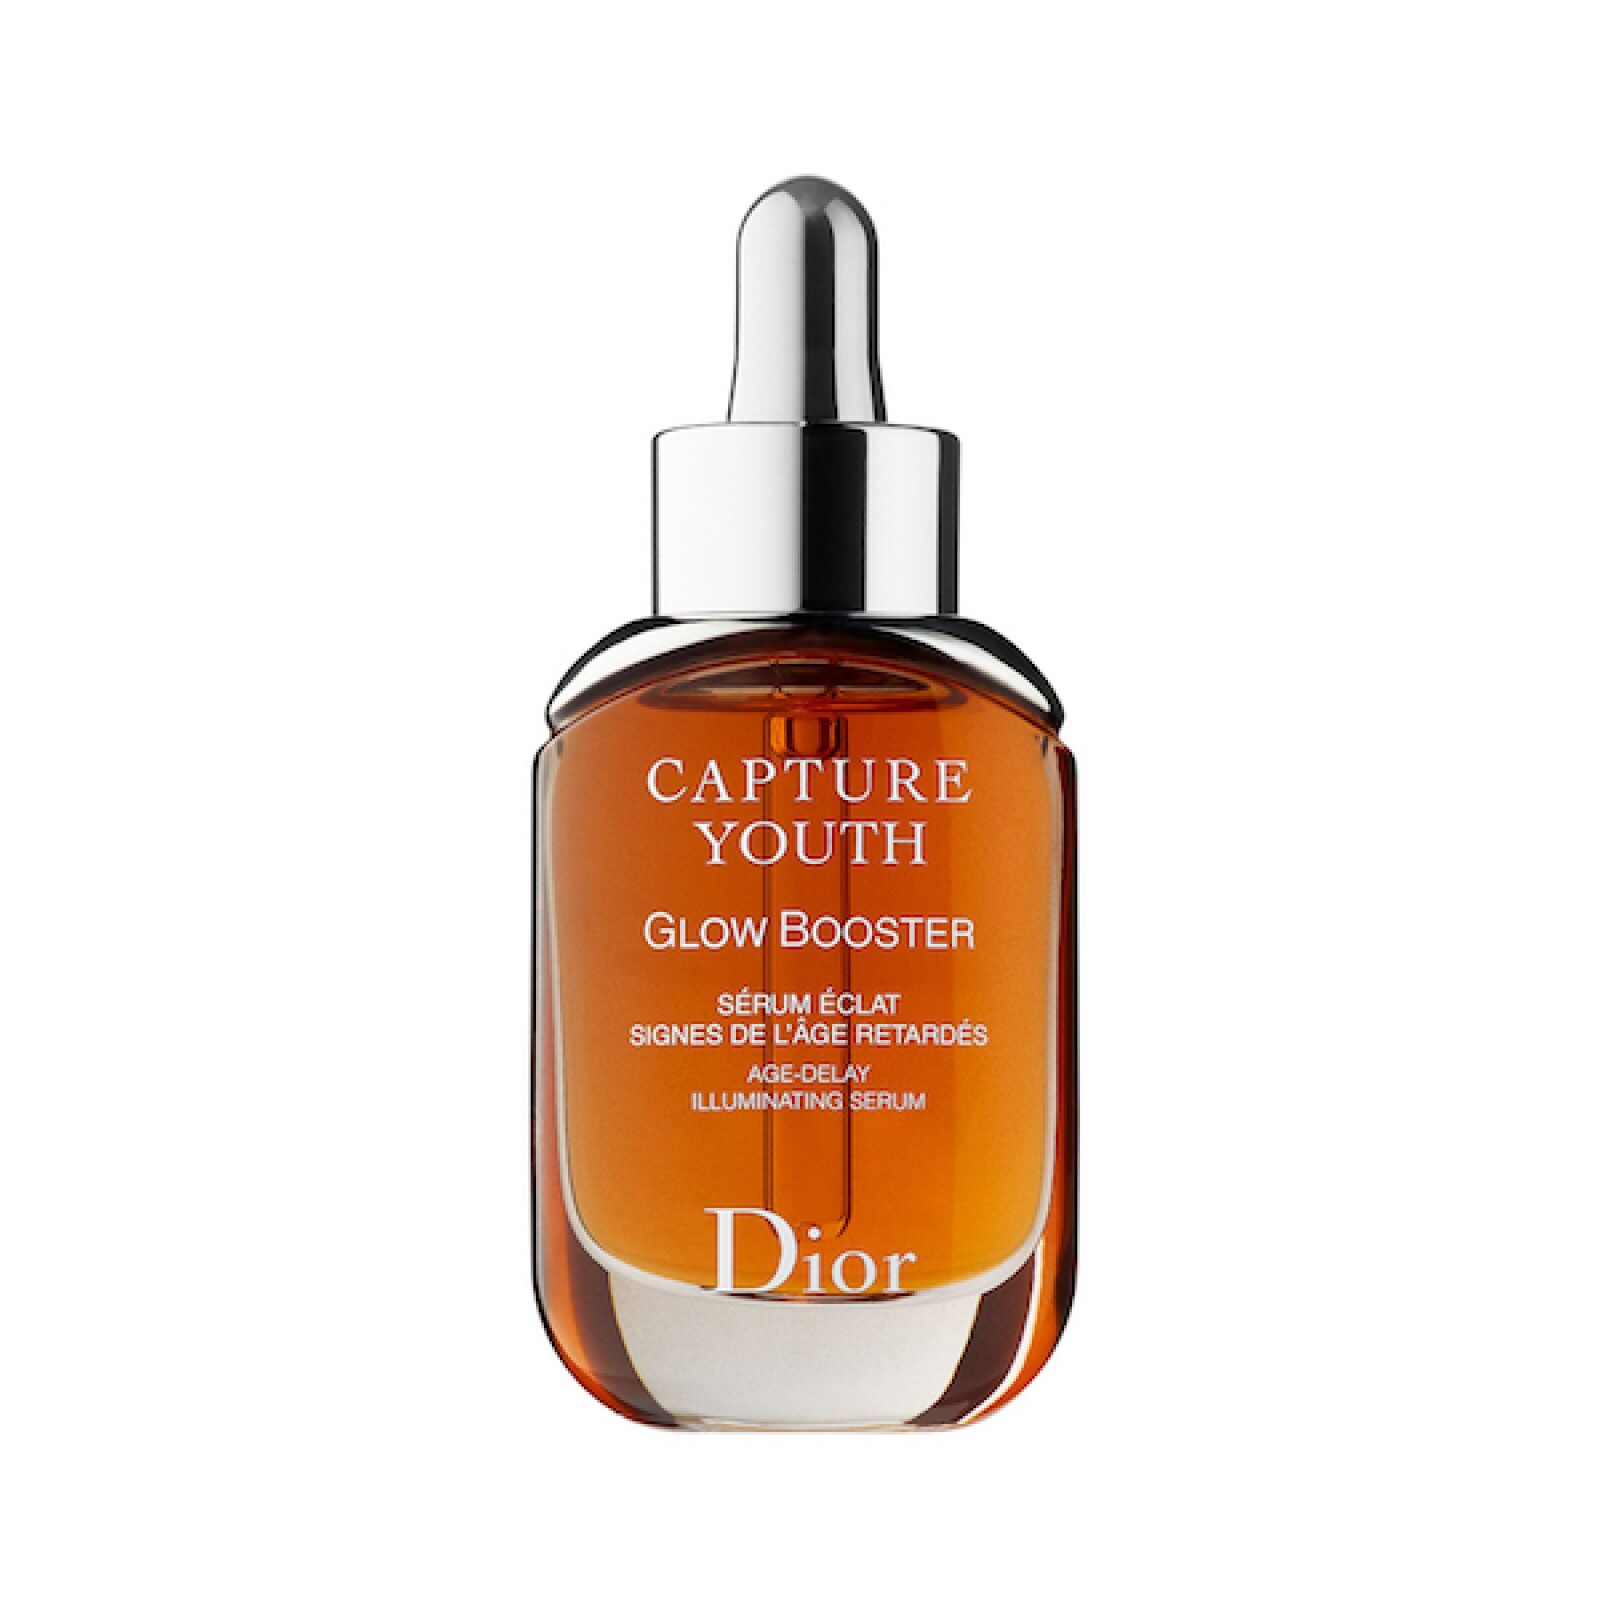 Dior-Capture-Youth-Creme-Glow.jpg